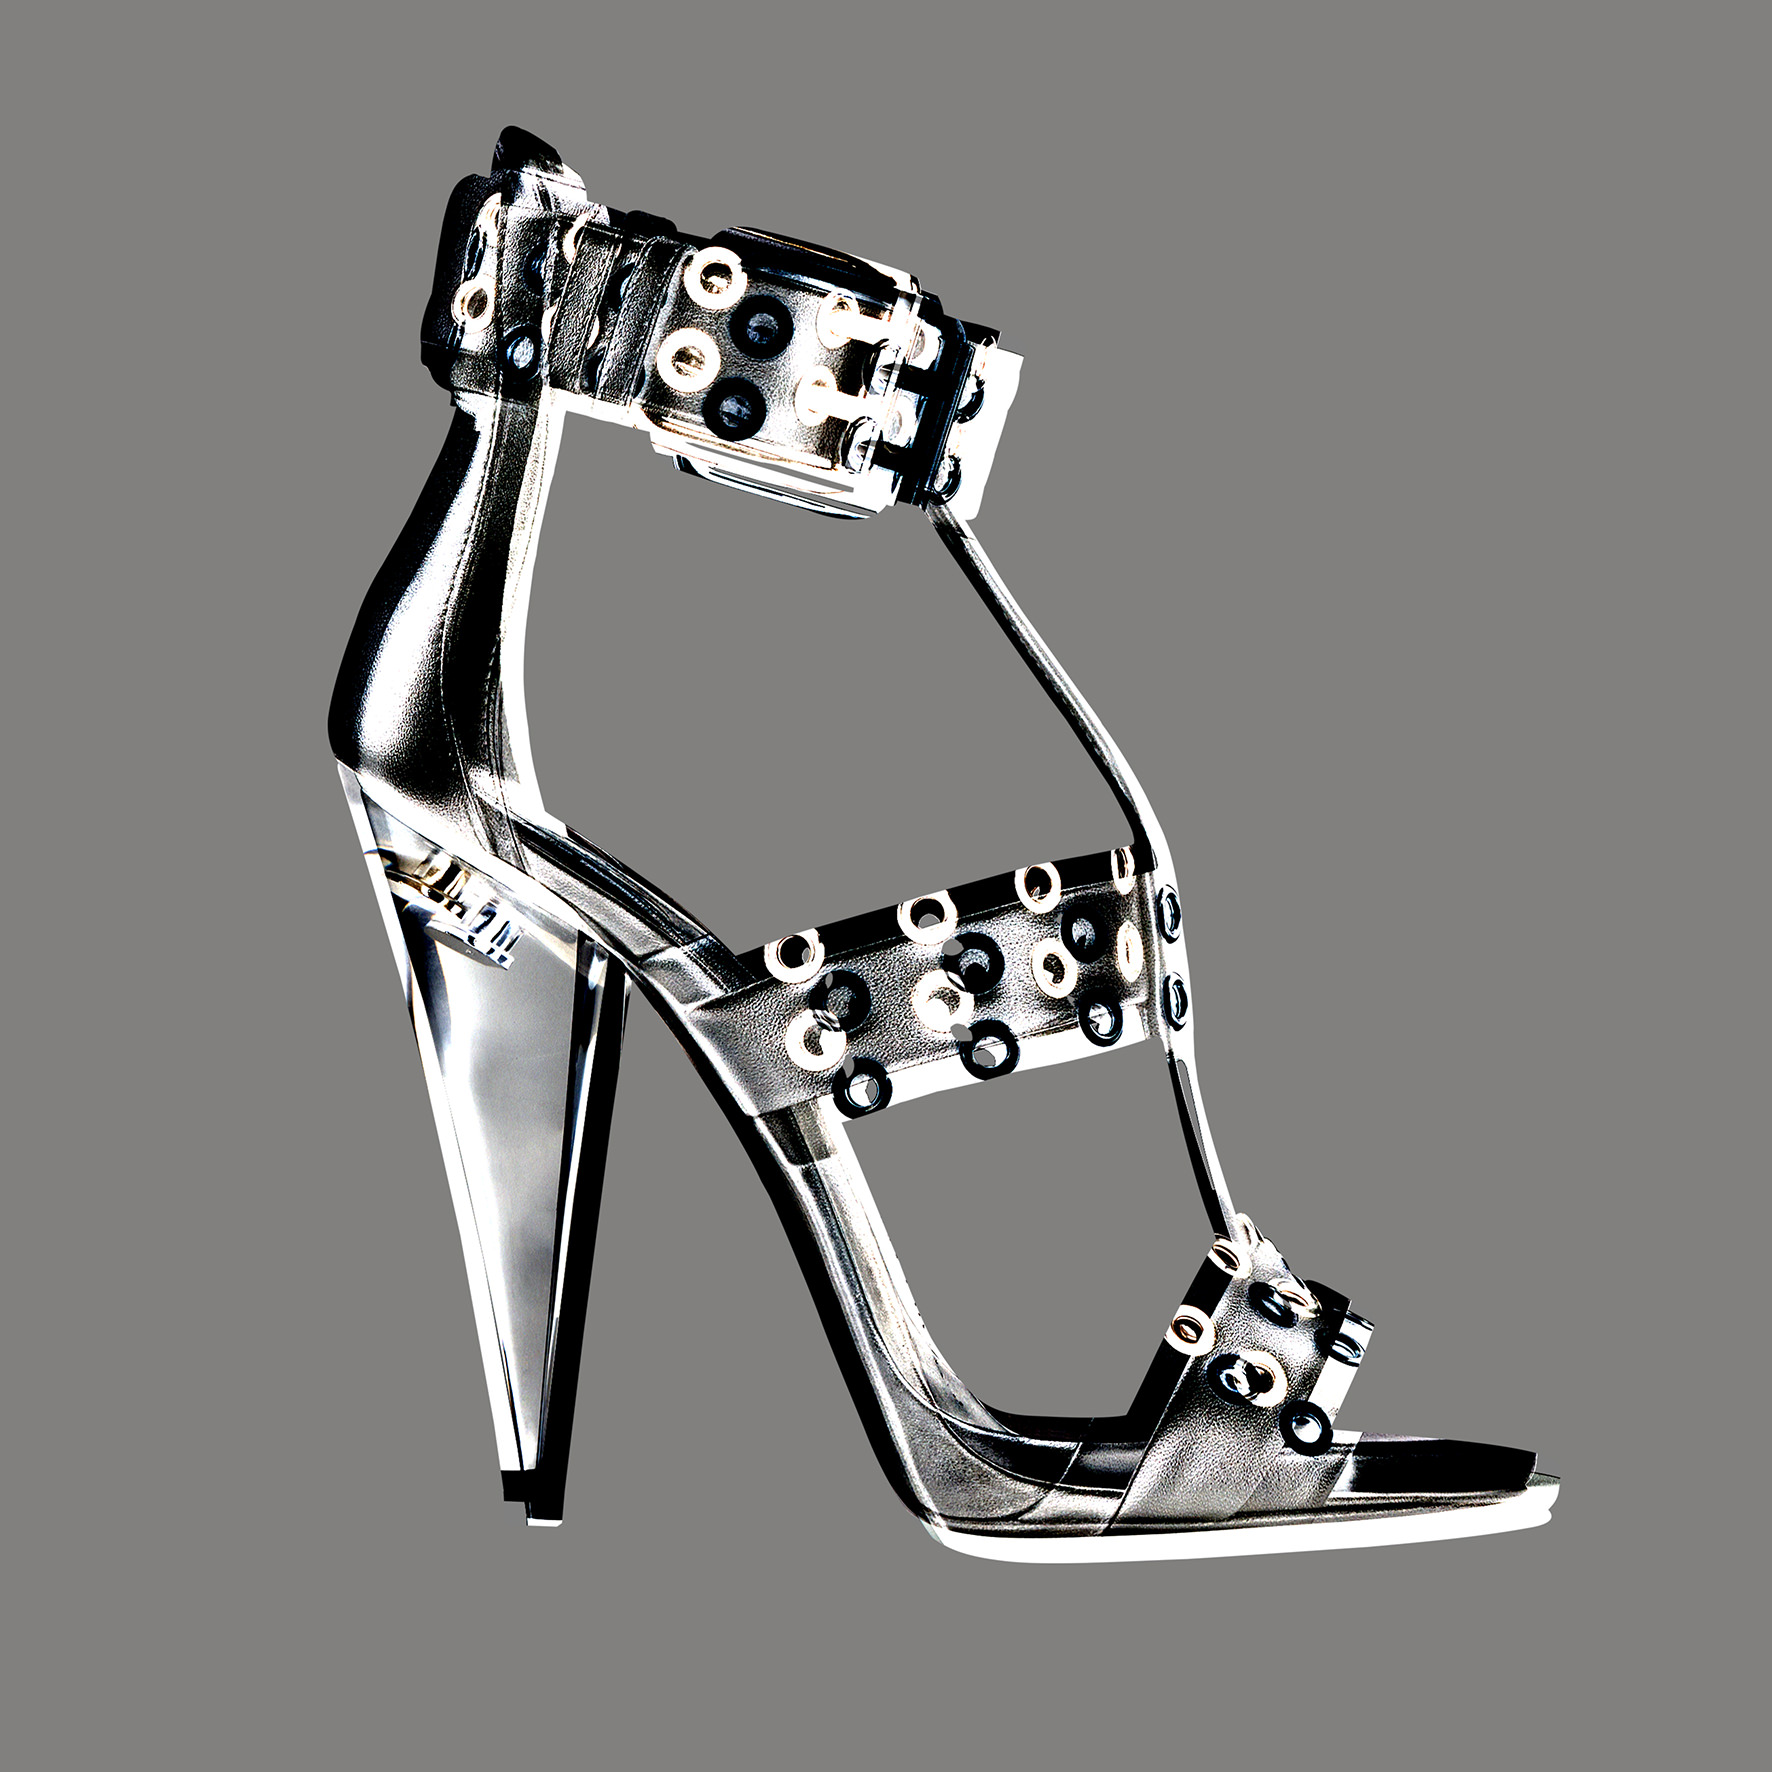 Metal and leather sandal, GIUSEPPE ZANOTTI DESIGN.   Selection by Rebecca Bleynie